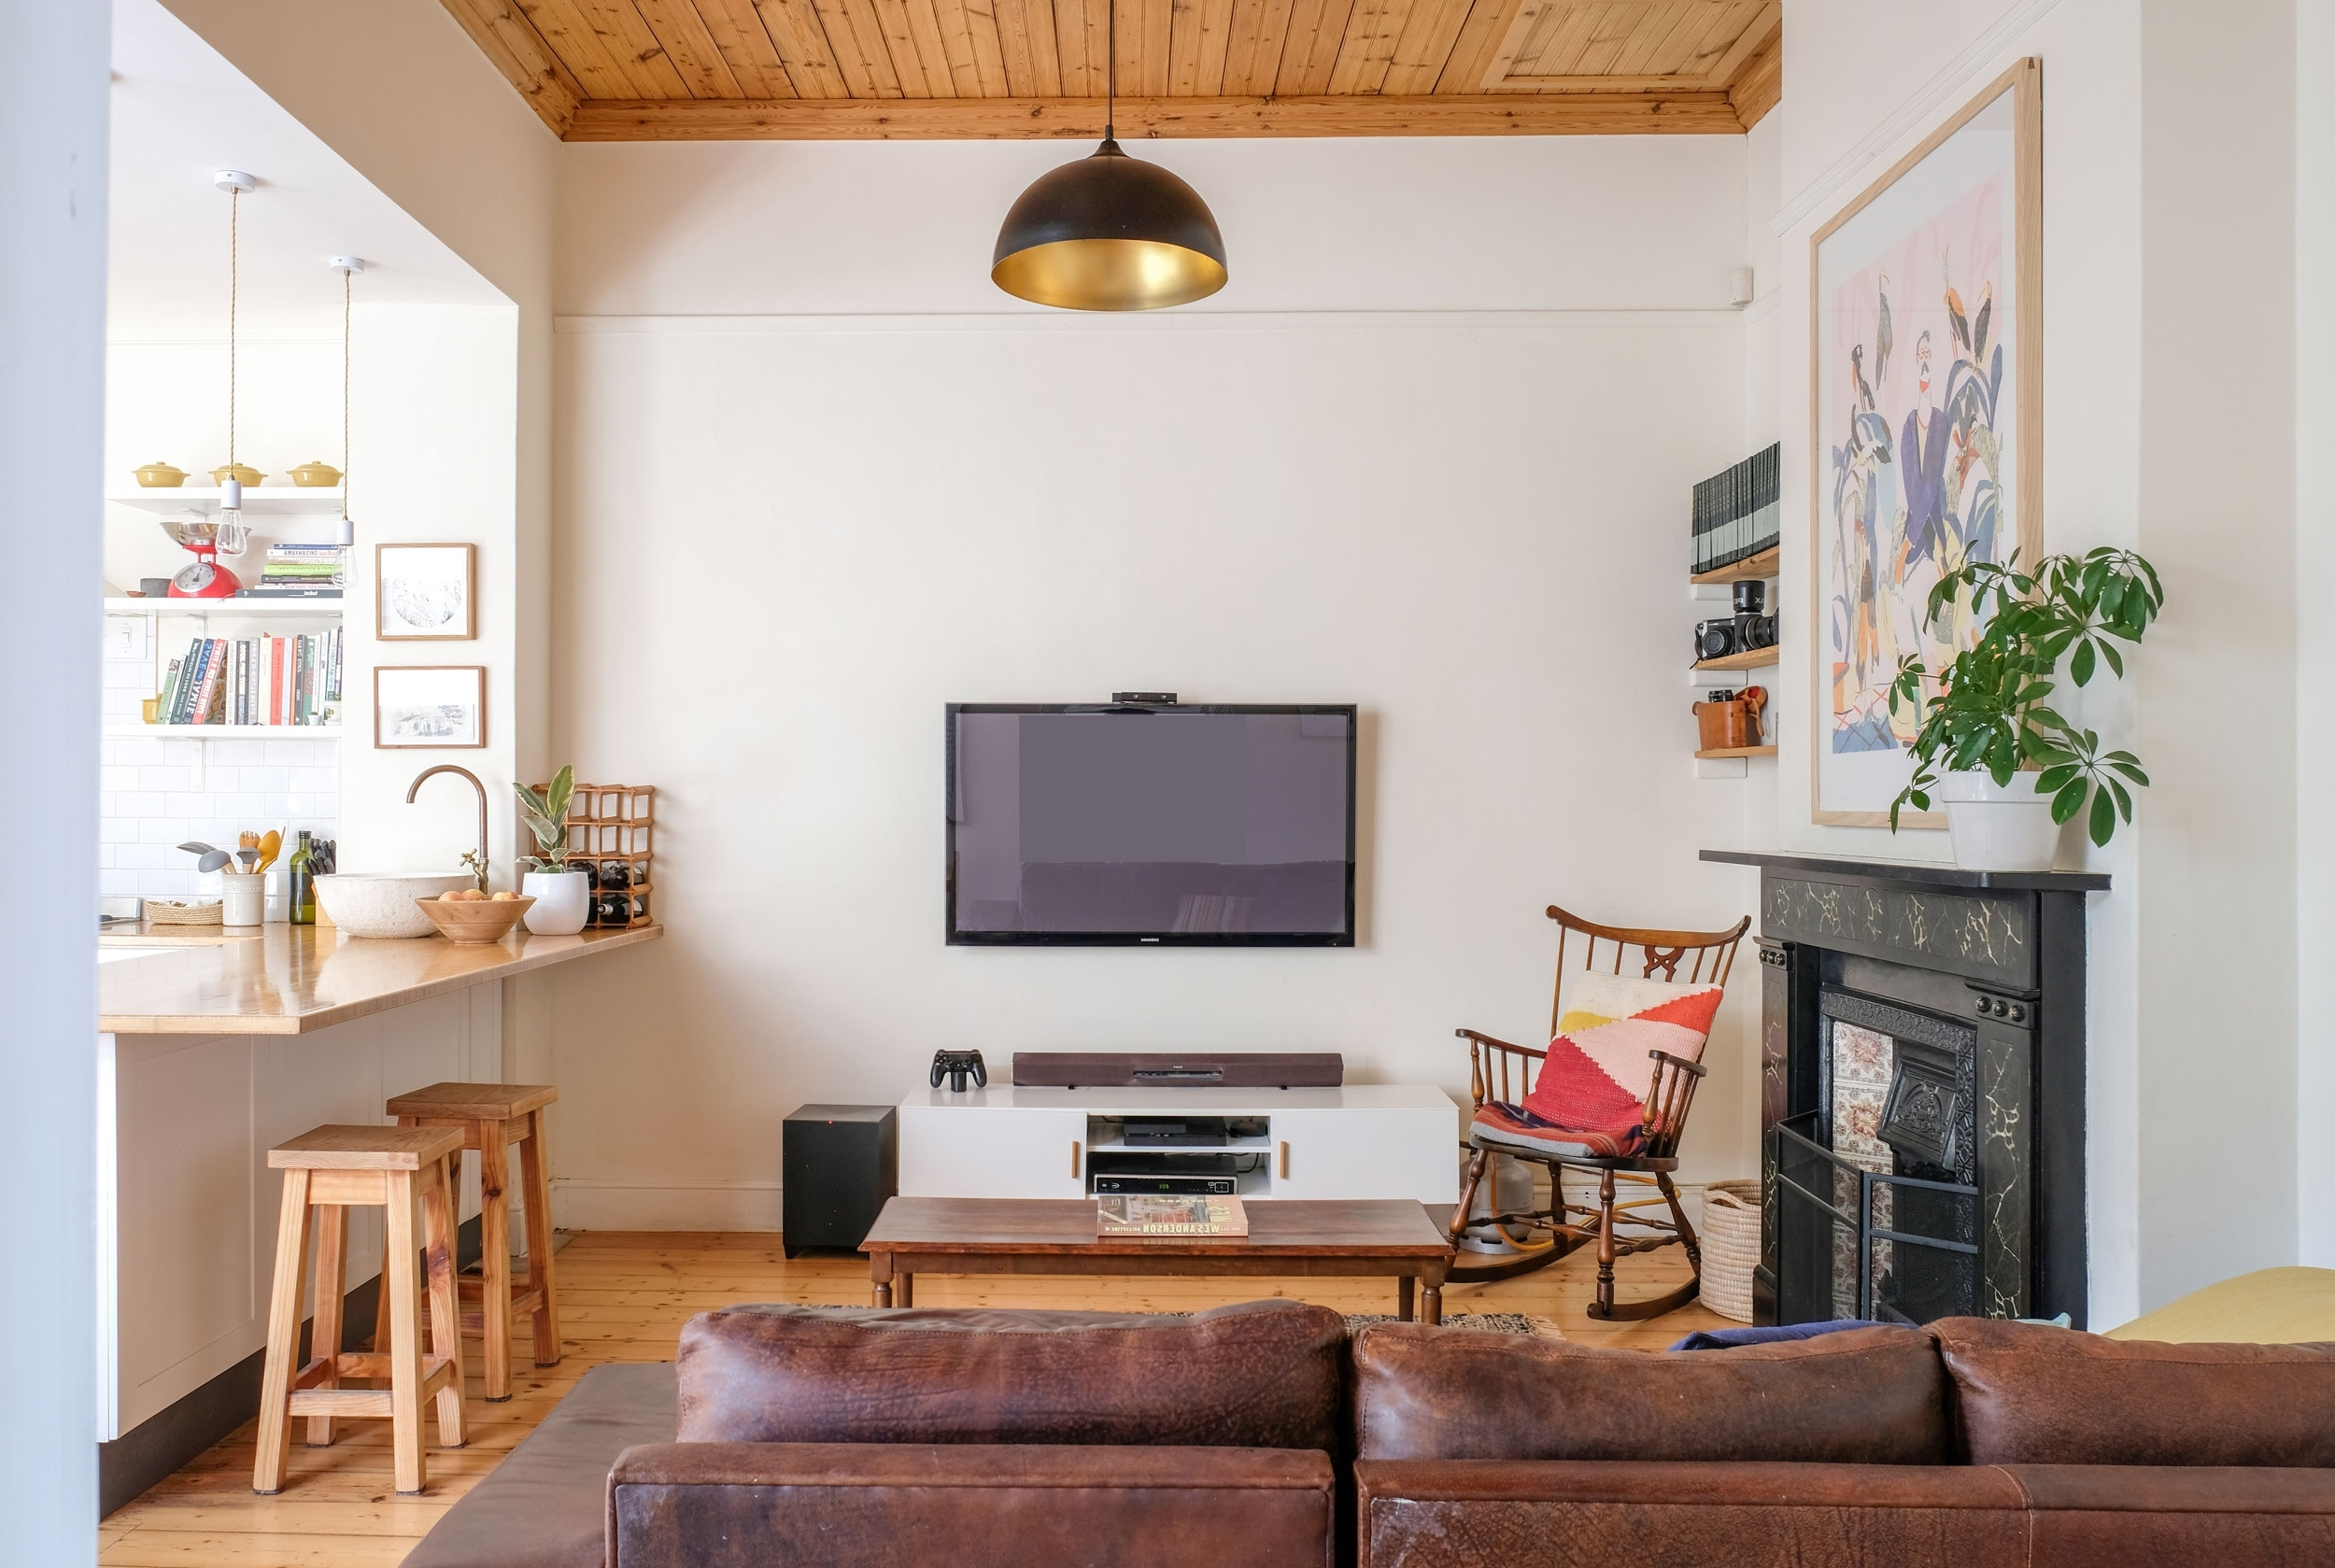 25 Best Tv Wall Ideas How To Arrange A Wall With A Tv 40+ Decorating Living Room With Flat Screen Tv Inspirations